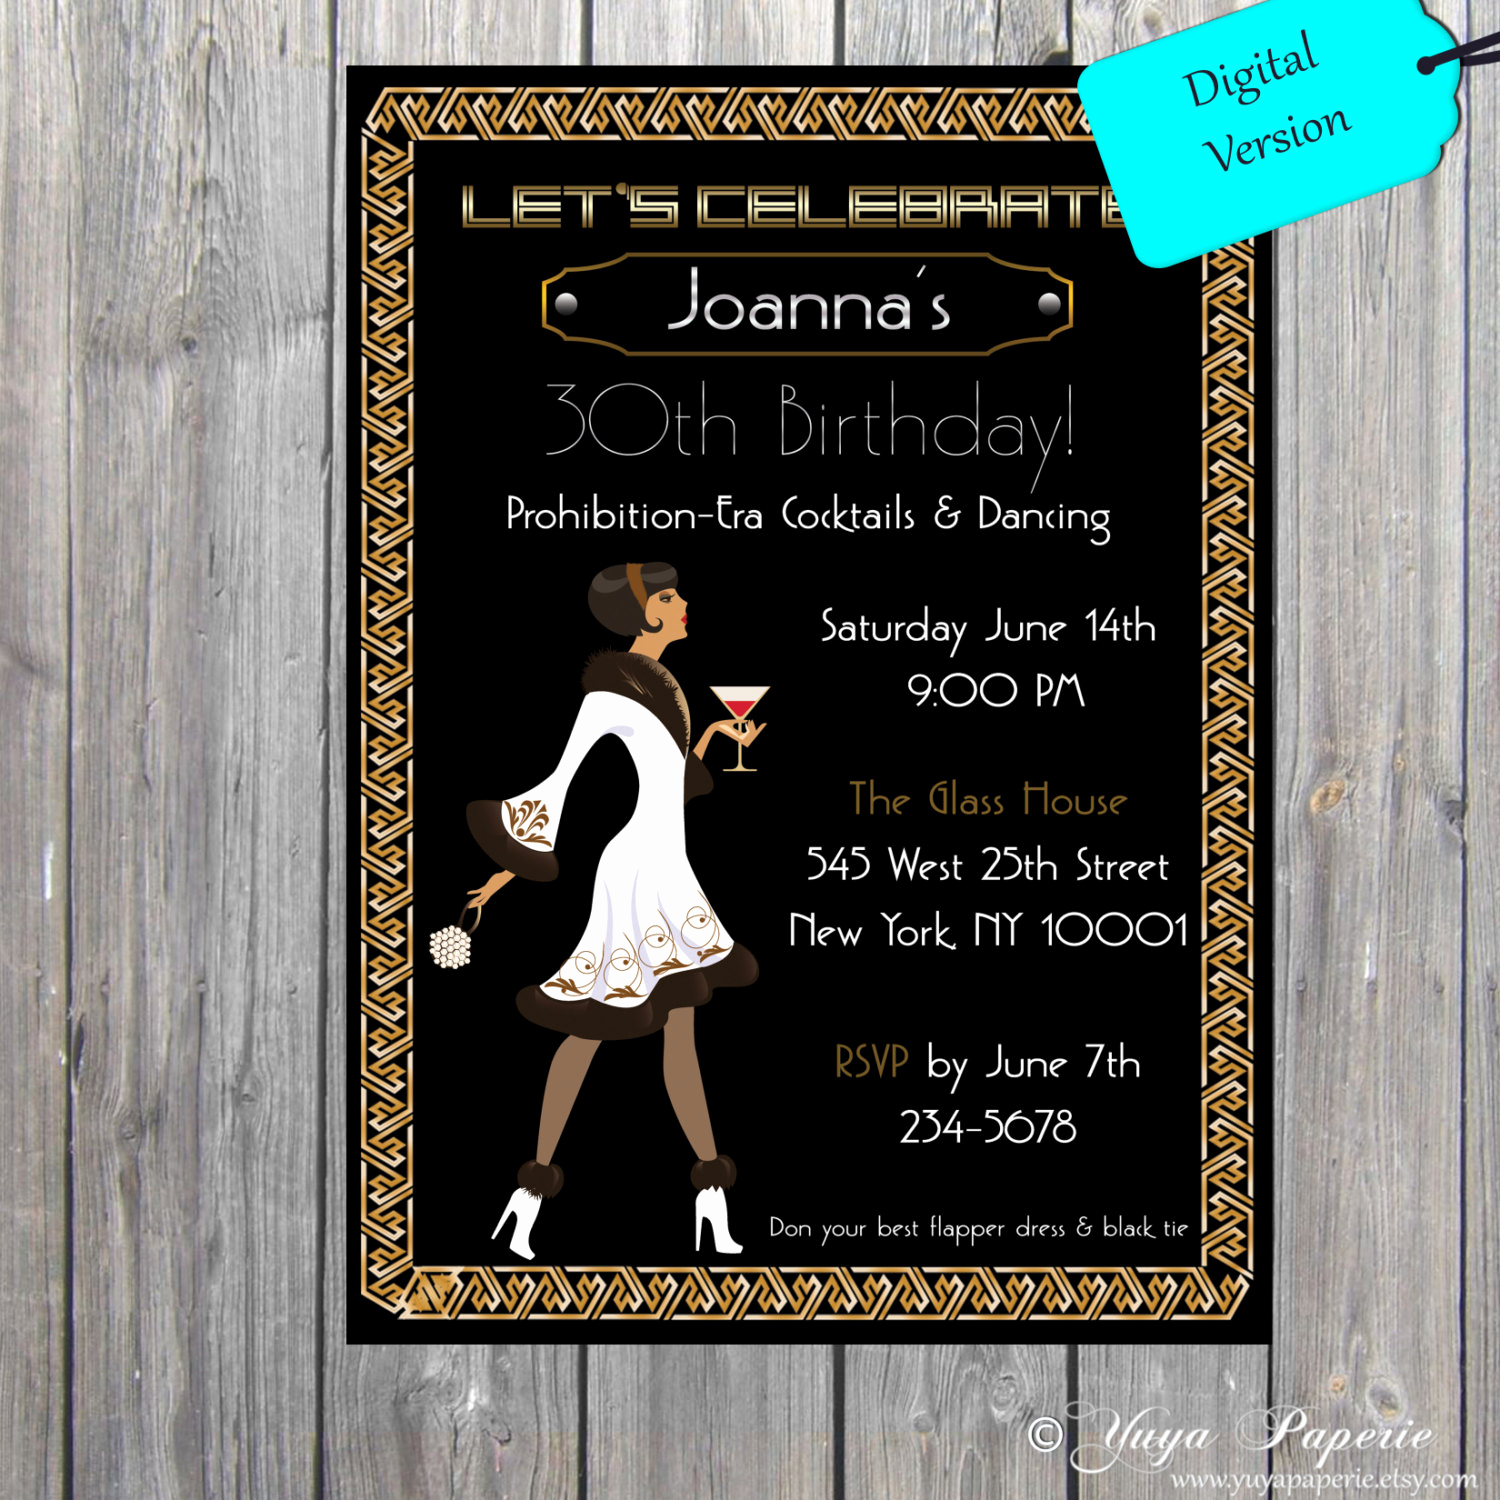 The Great Gatsby Invitation Best Of 1920s Great Gatsby Birthday Invitation 21st Birthday